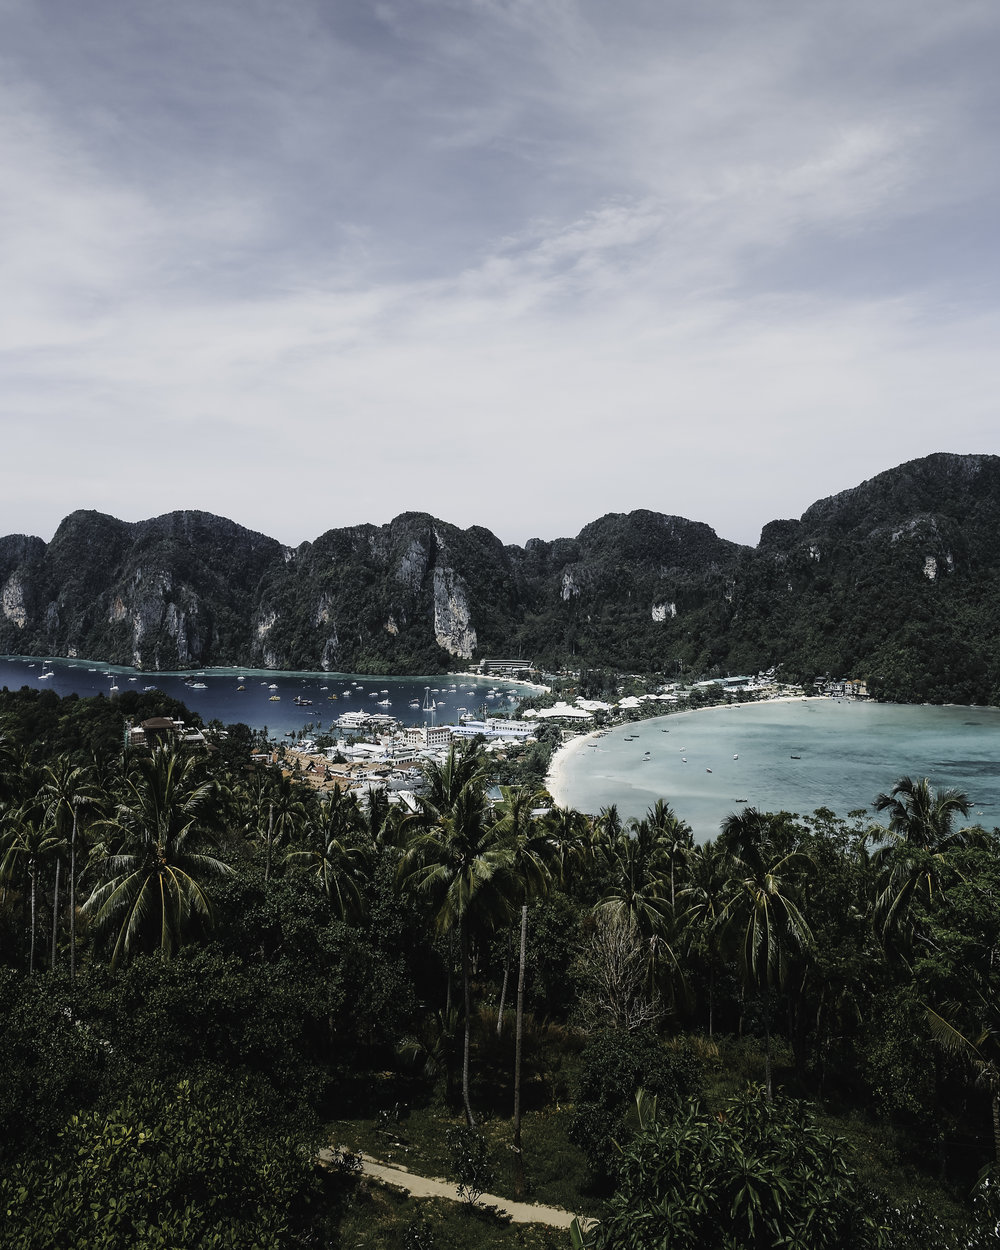 Phi phi islands - Thailand - Mads Nordsveen photography